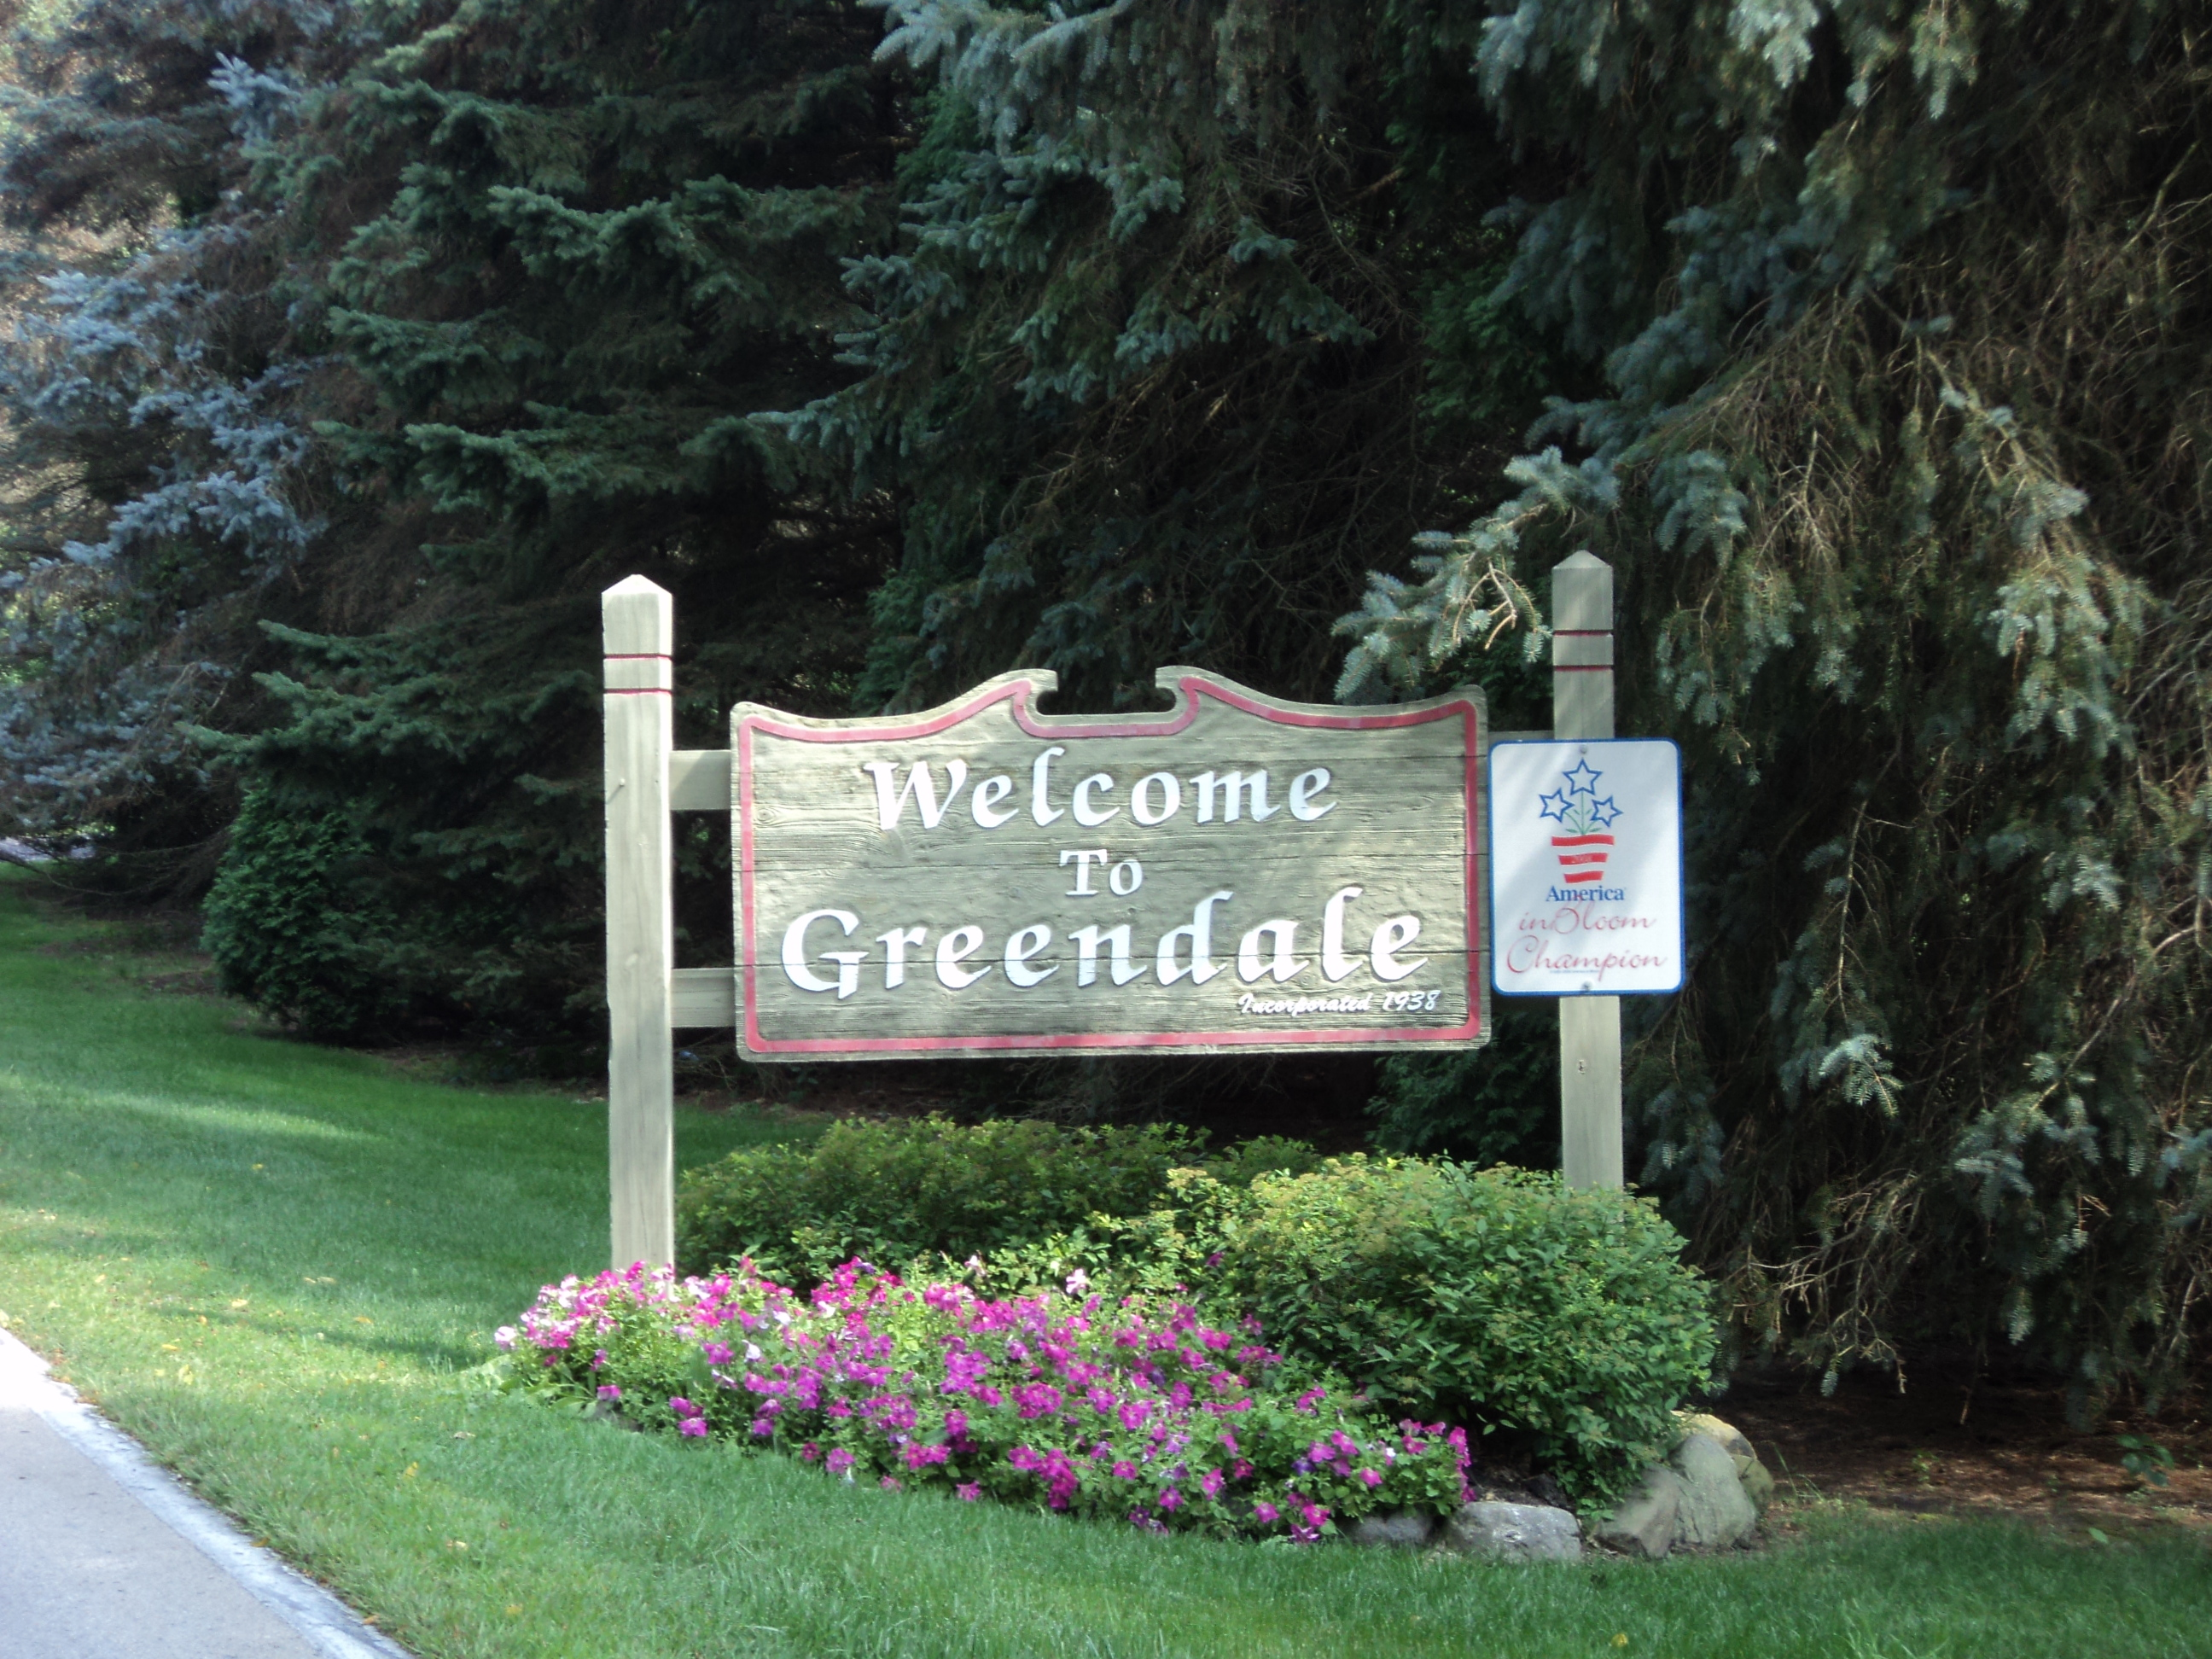 Welcome to Greendale!